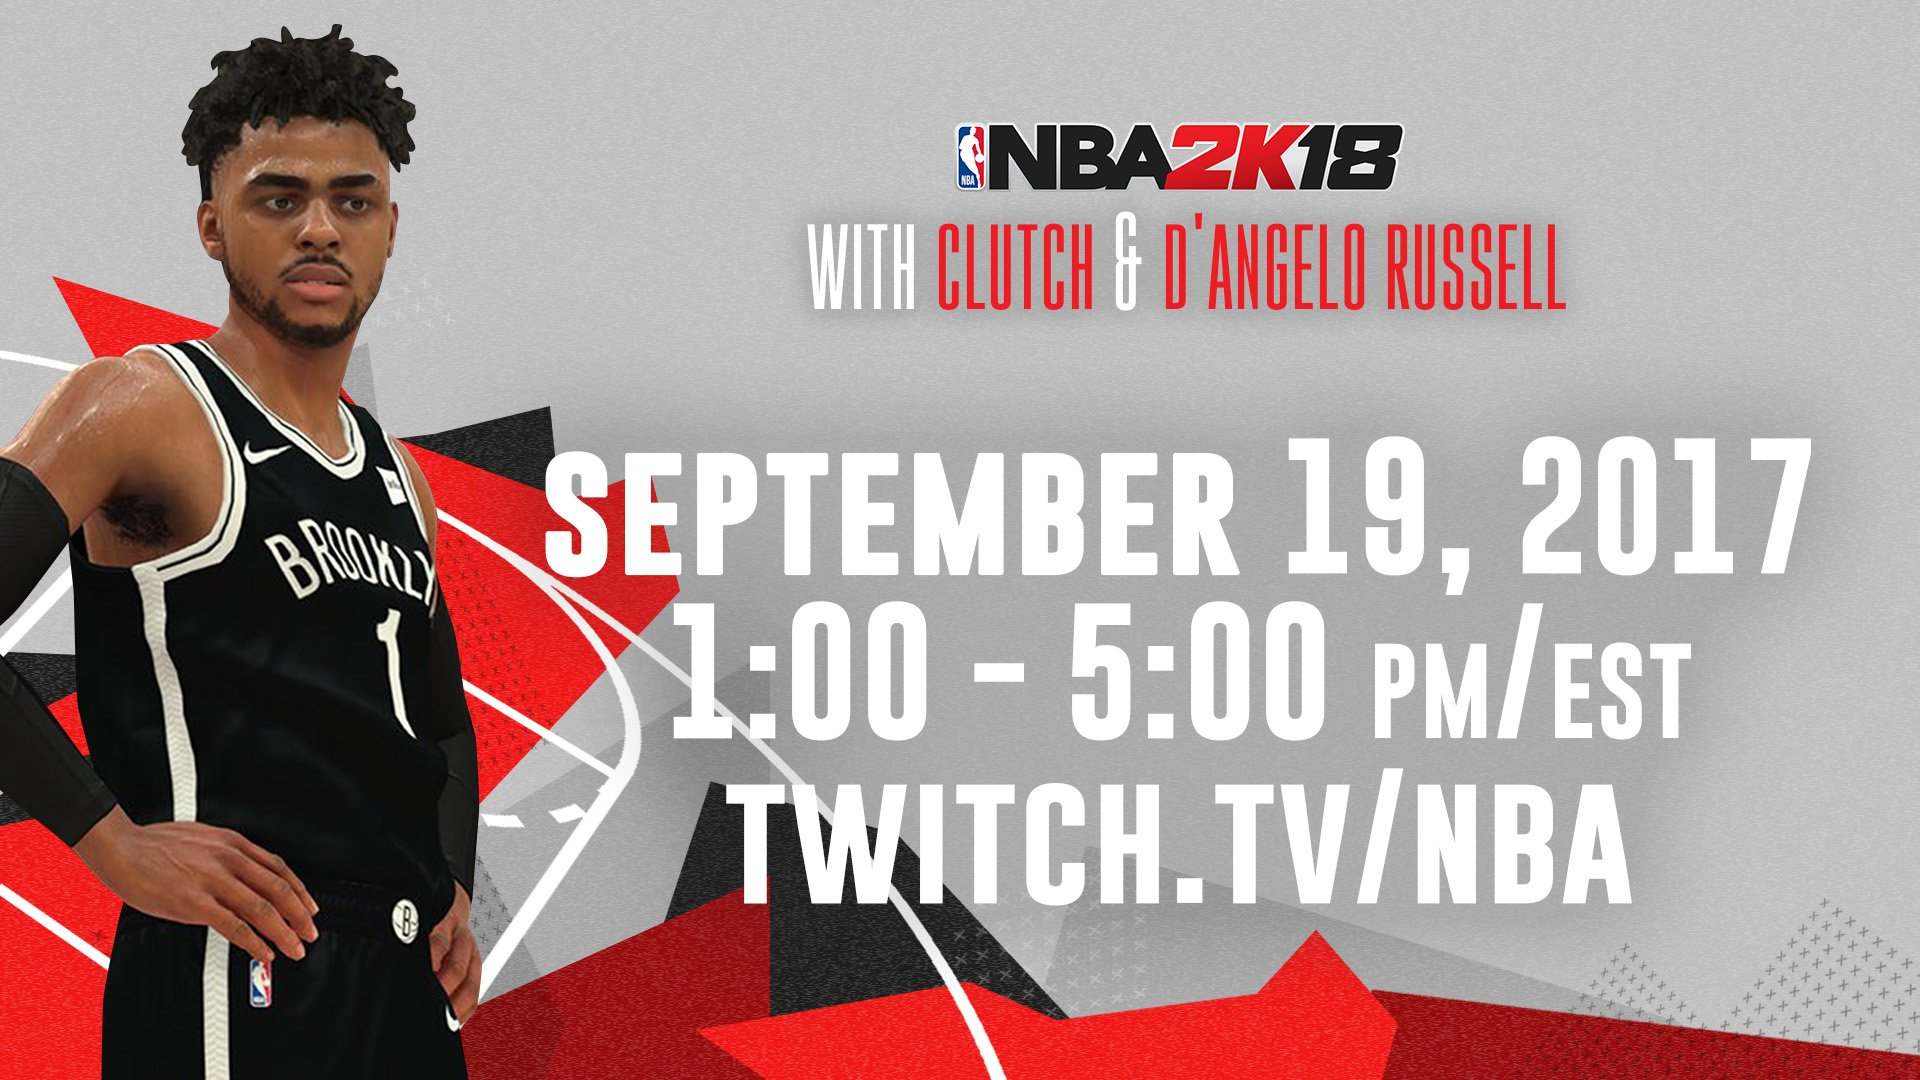 Join us starting at 1pm/et today on https://t.co/DEWs5XHyKl as we get started with @NBA2K! https://t.co/bWFZMNgaLQ